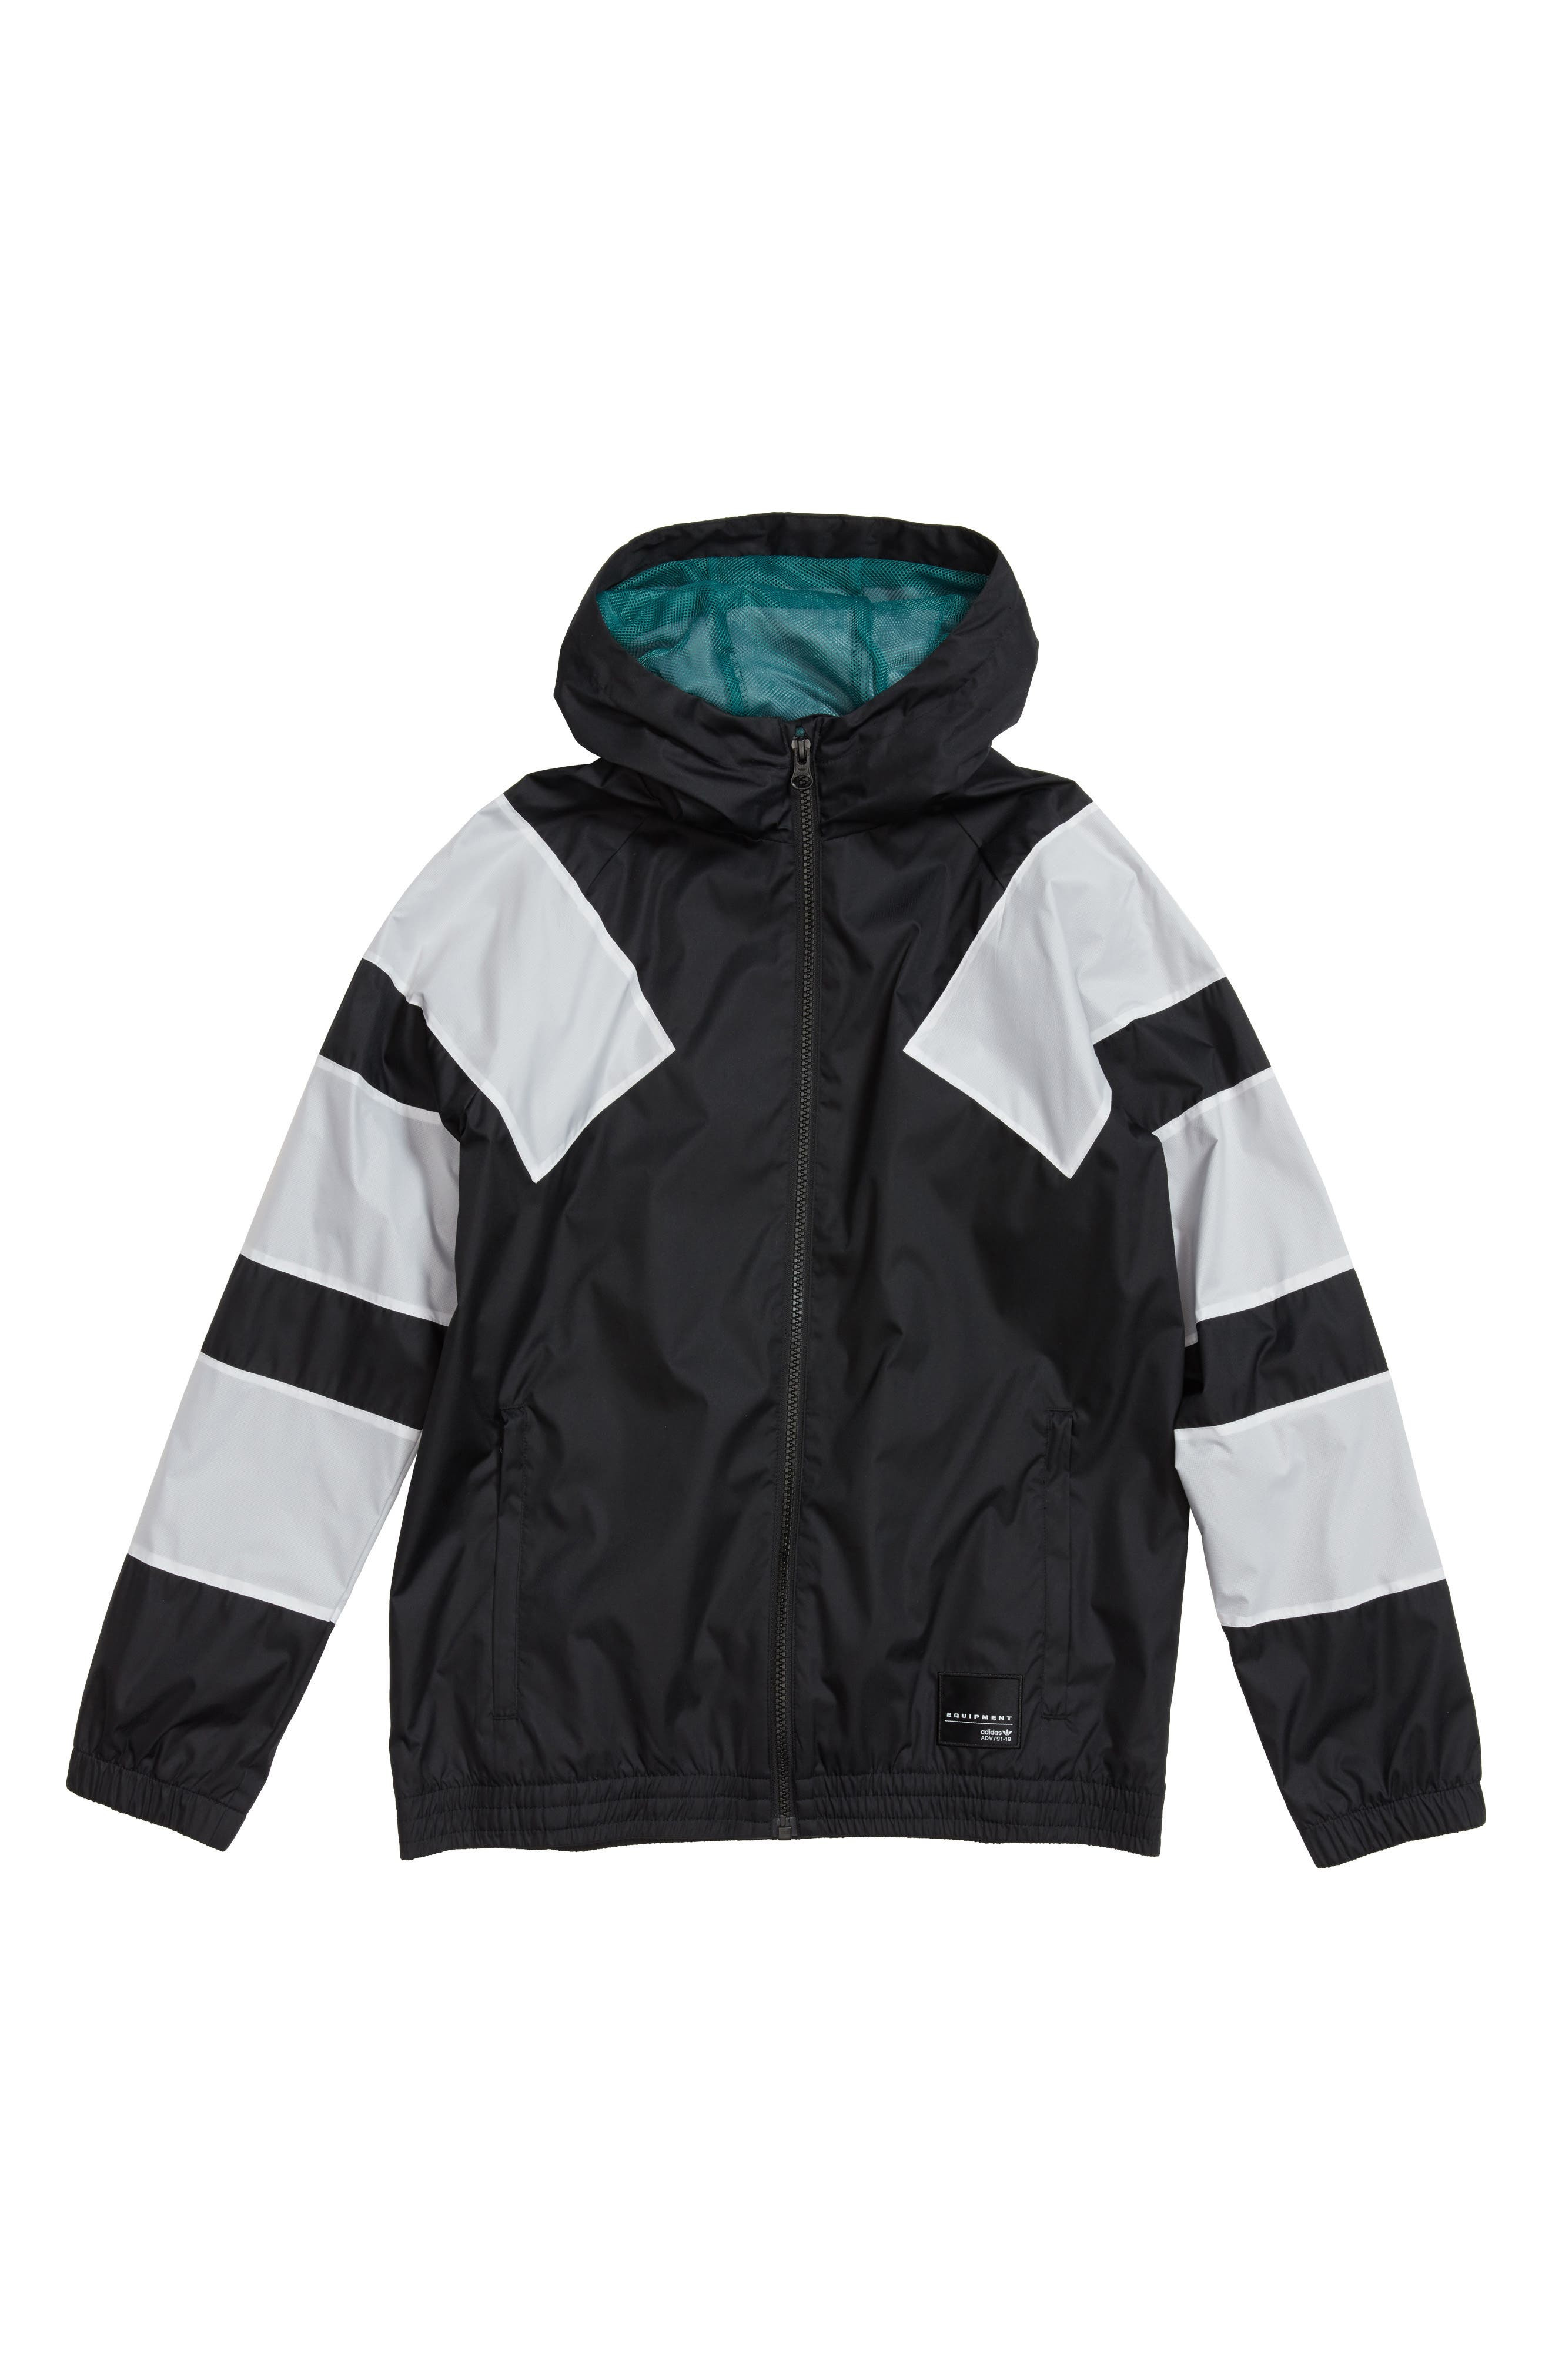 Alternate Image 1 Selected - adidas Originals EQT Hooded Windbreaker Jacket (Little Boys & Big Boys)